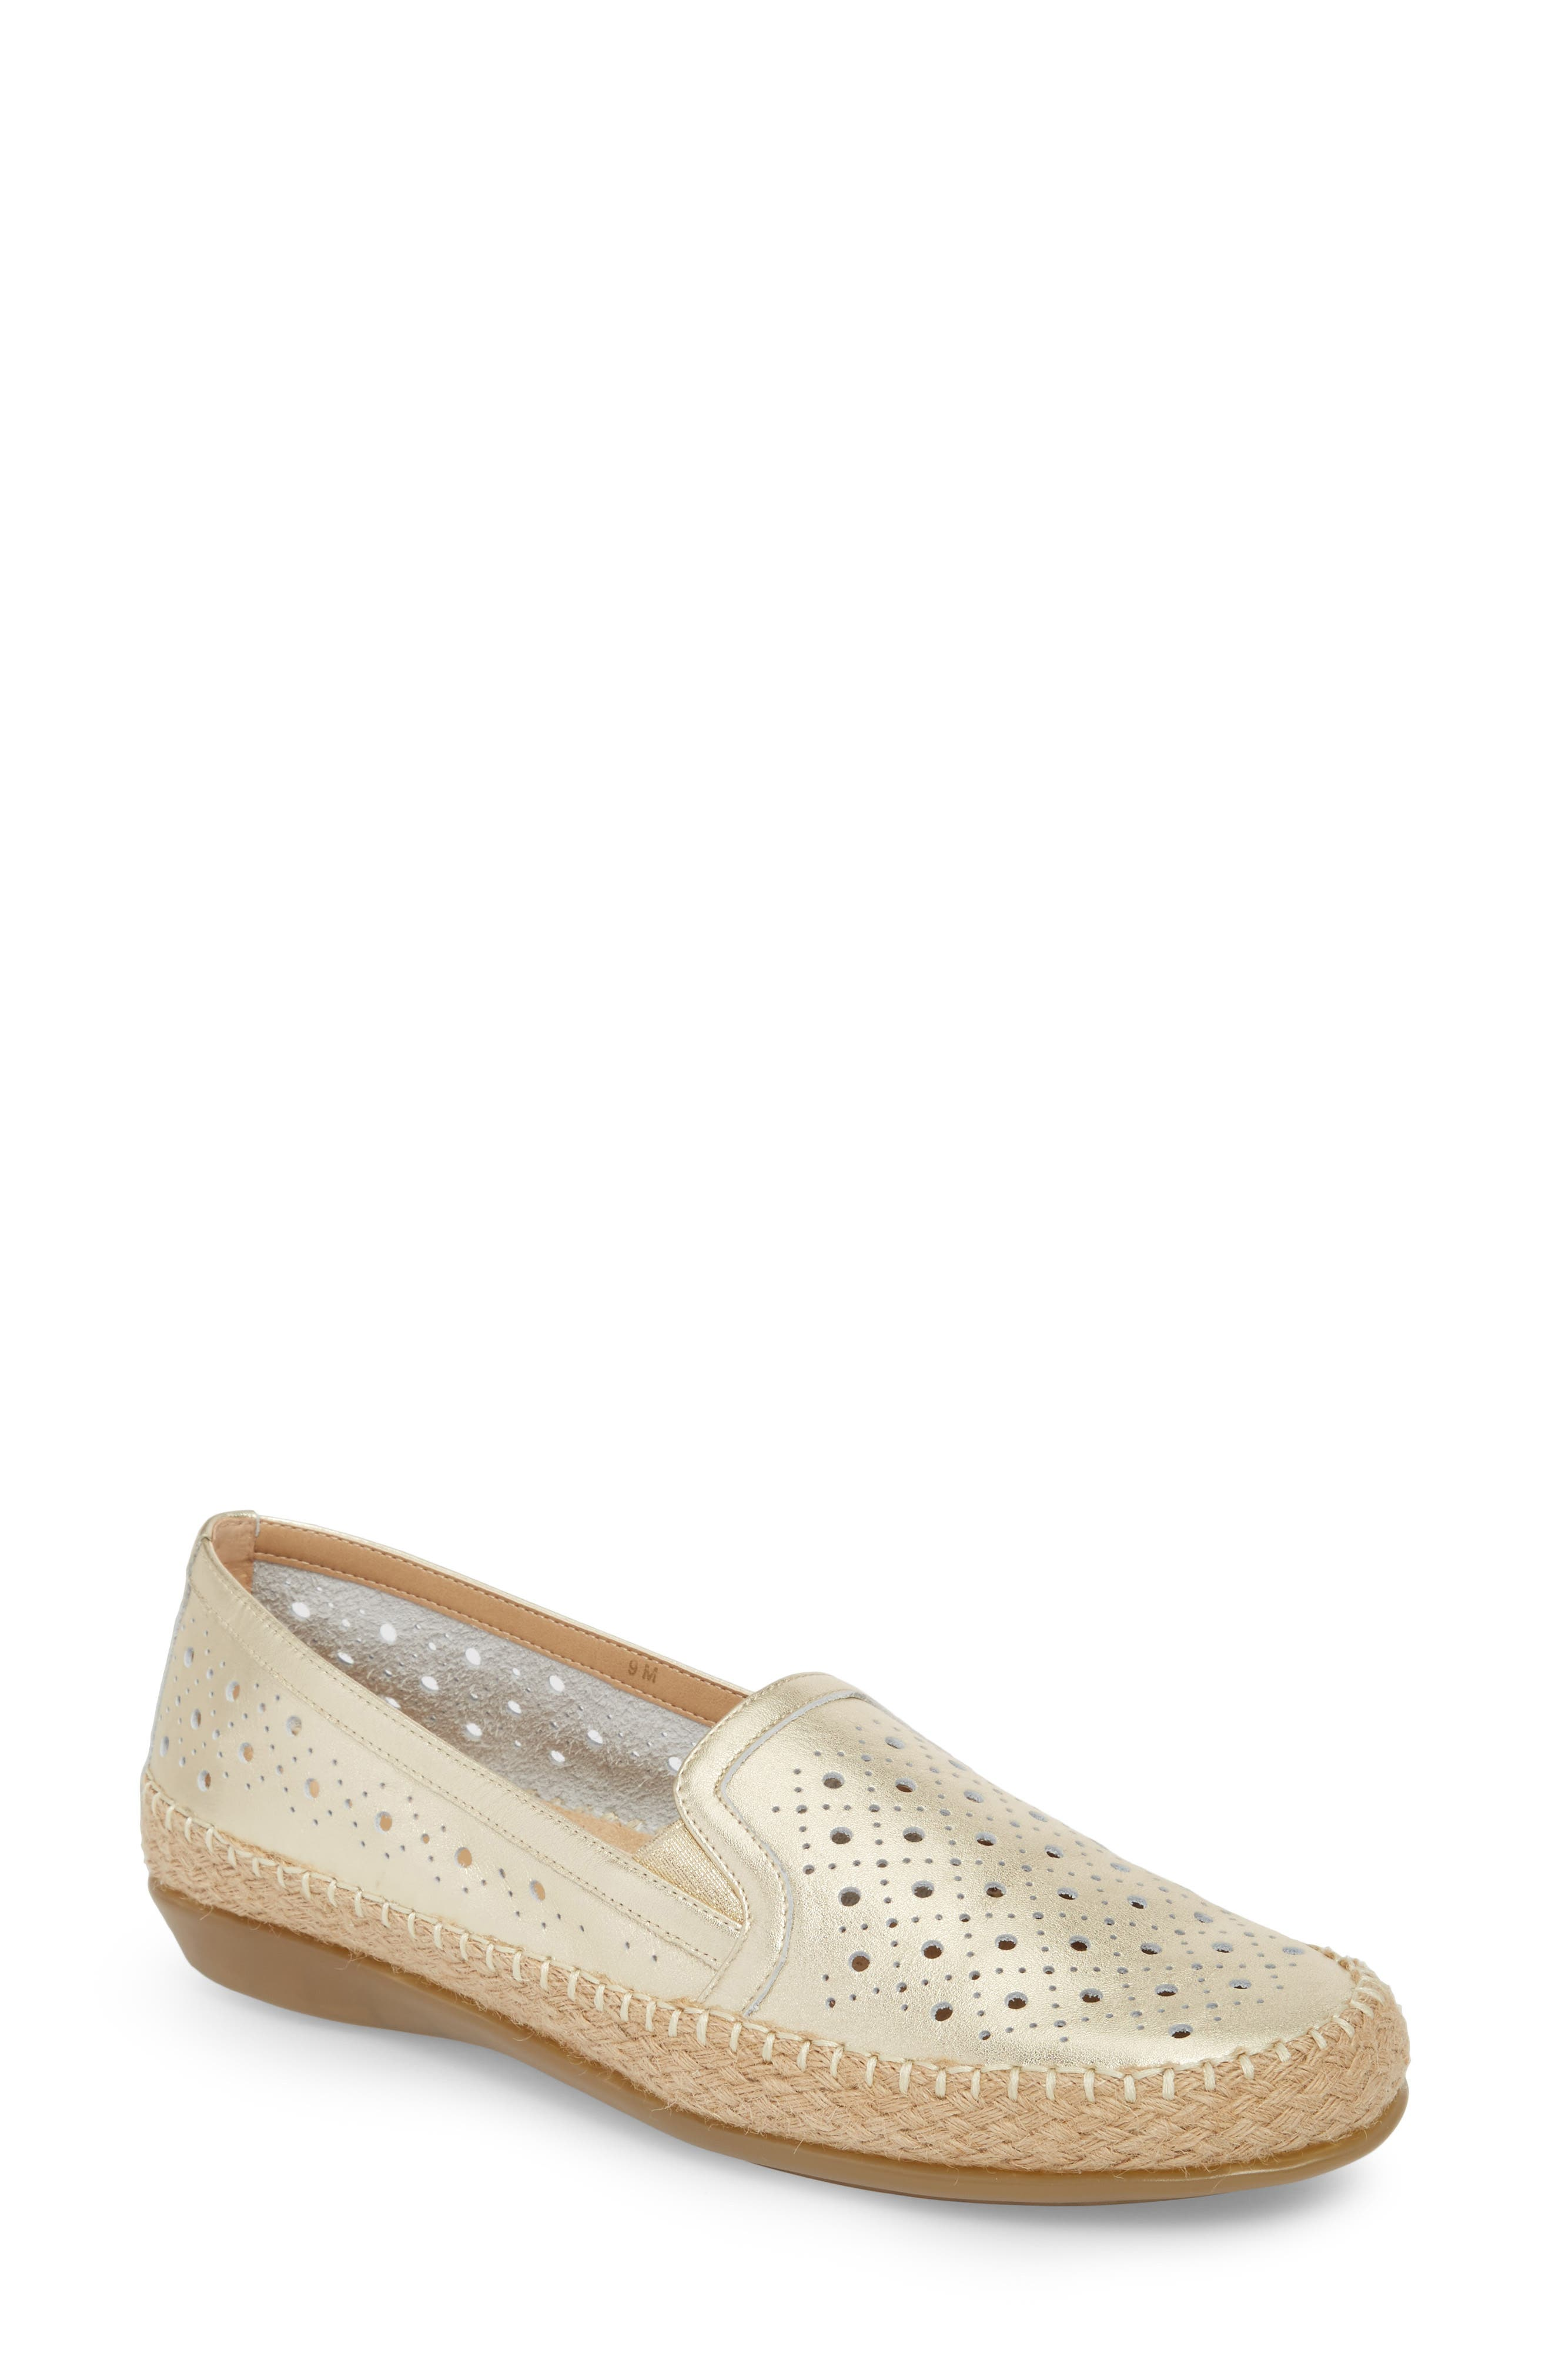 Nicki Perforated Espadrille Flat,                         Main,                         color, PLATINO LEATHER